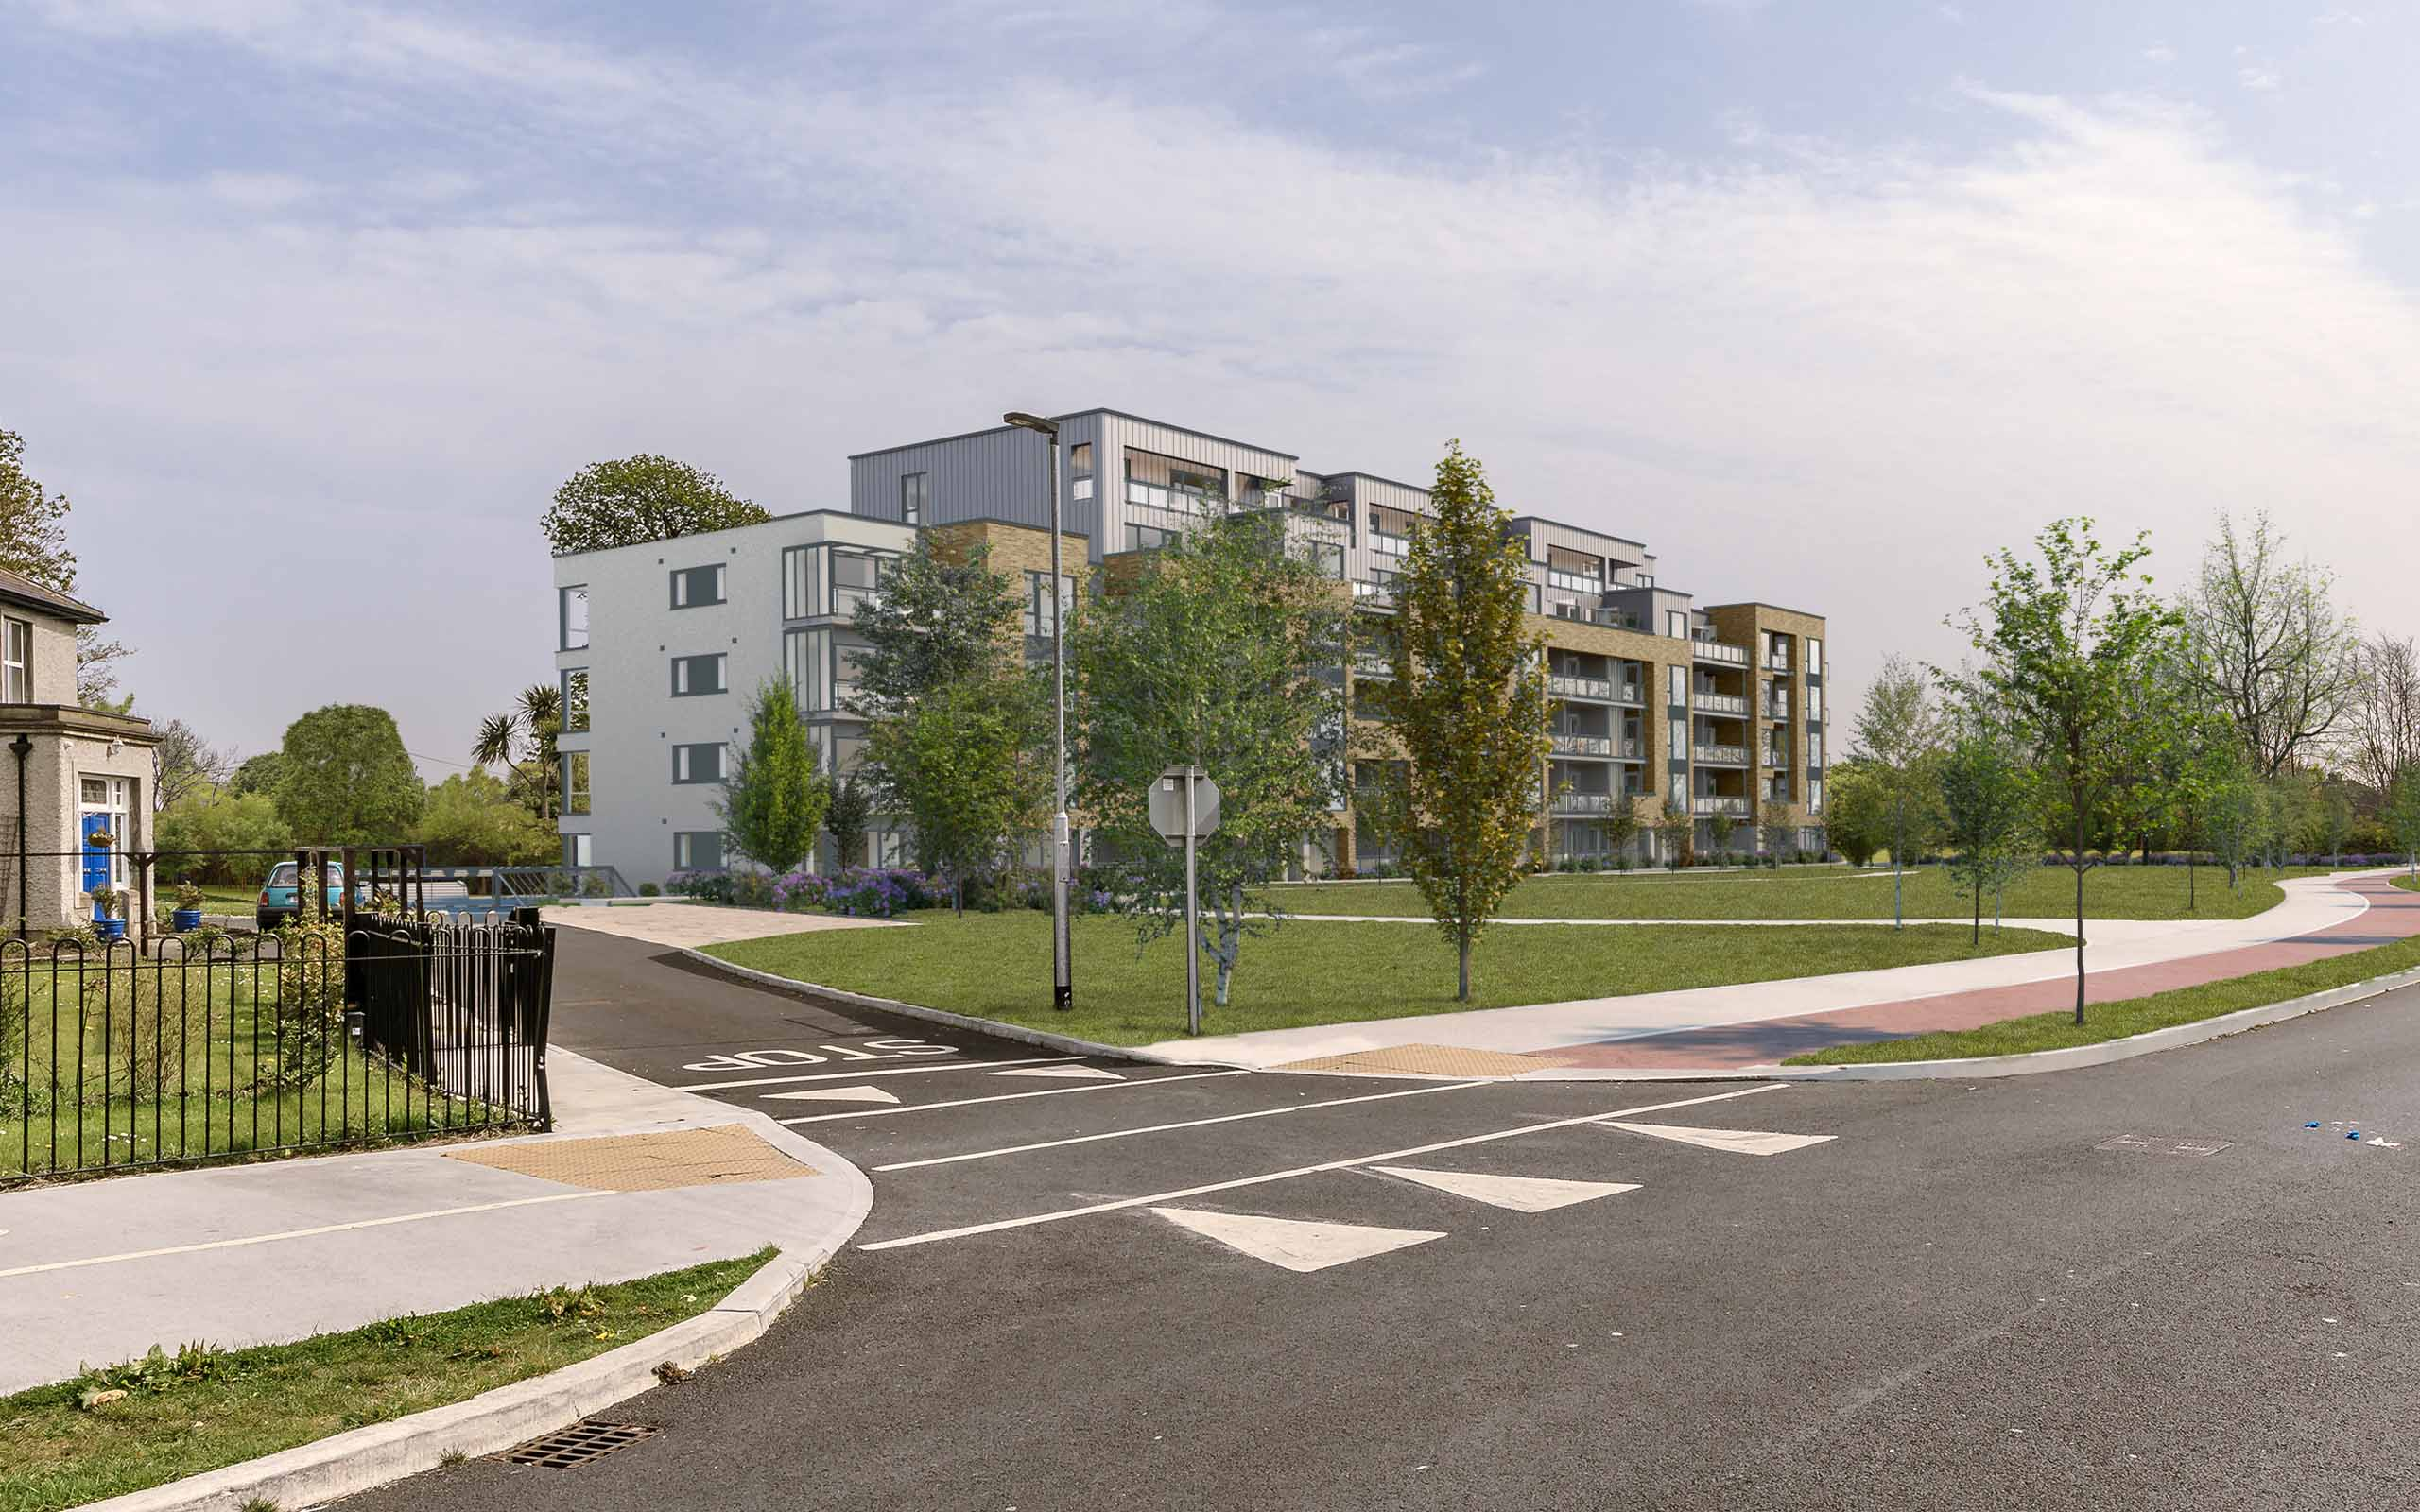 Verified view montage of 88 apartments at Chanel College site, Coolock.